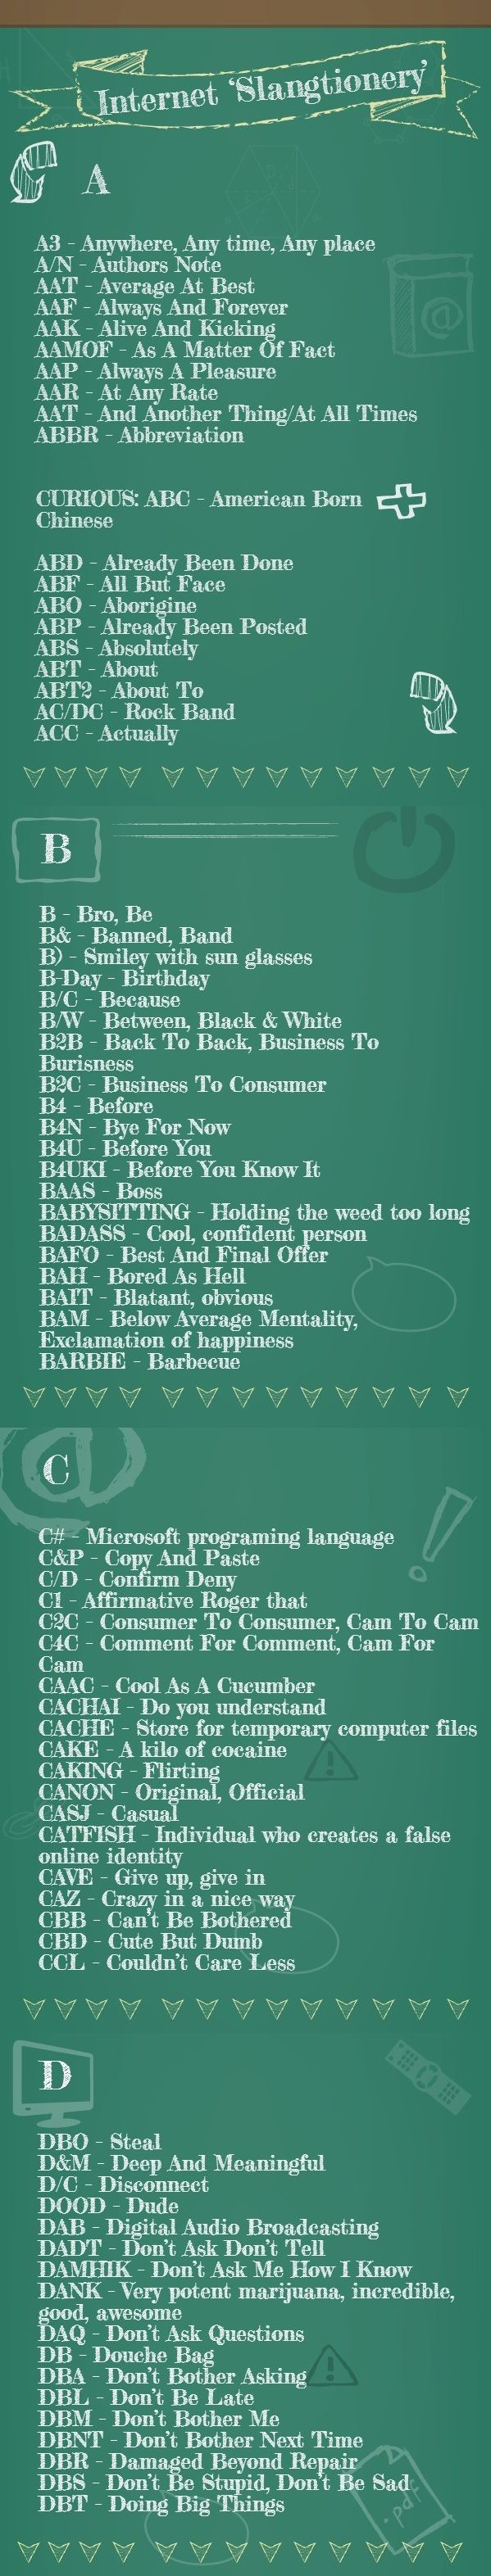 """The """"Slangtionery"""", the Internet slang dictionary for acronyms [Part 1]"""